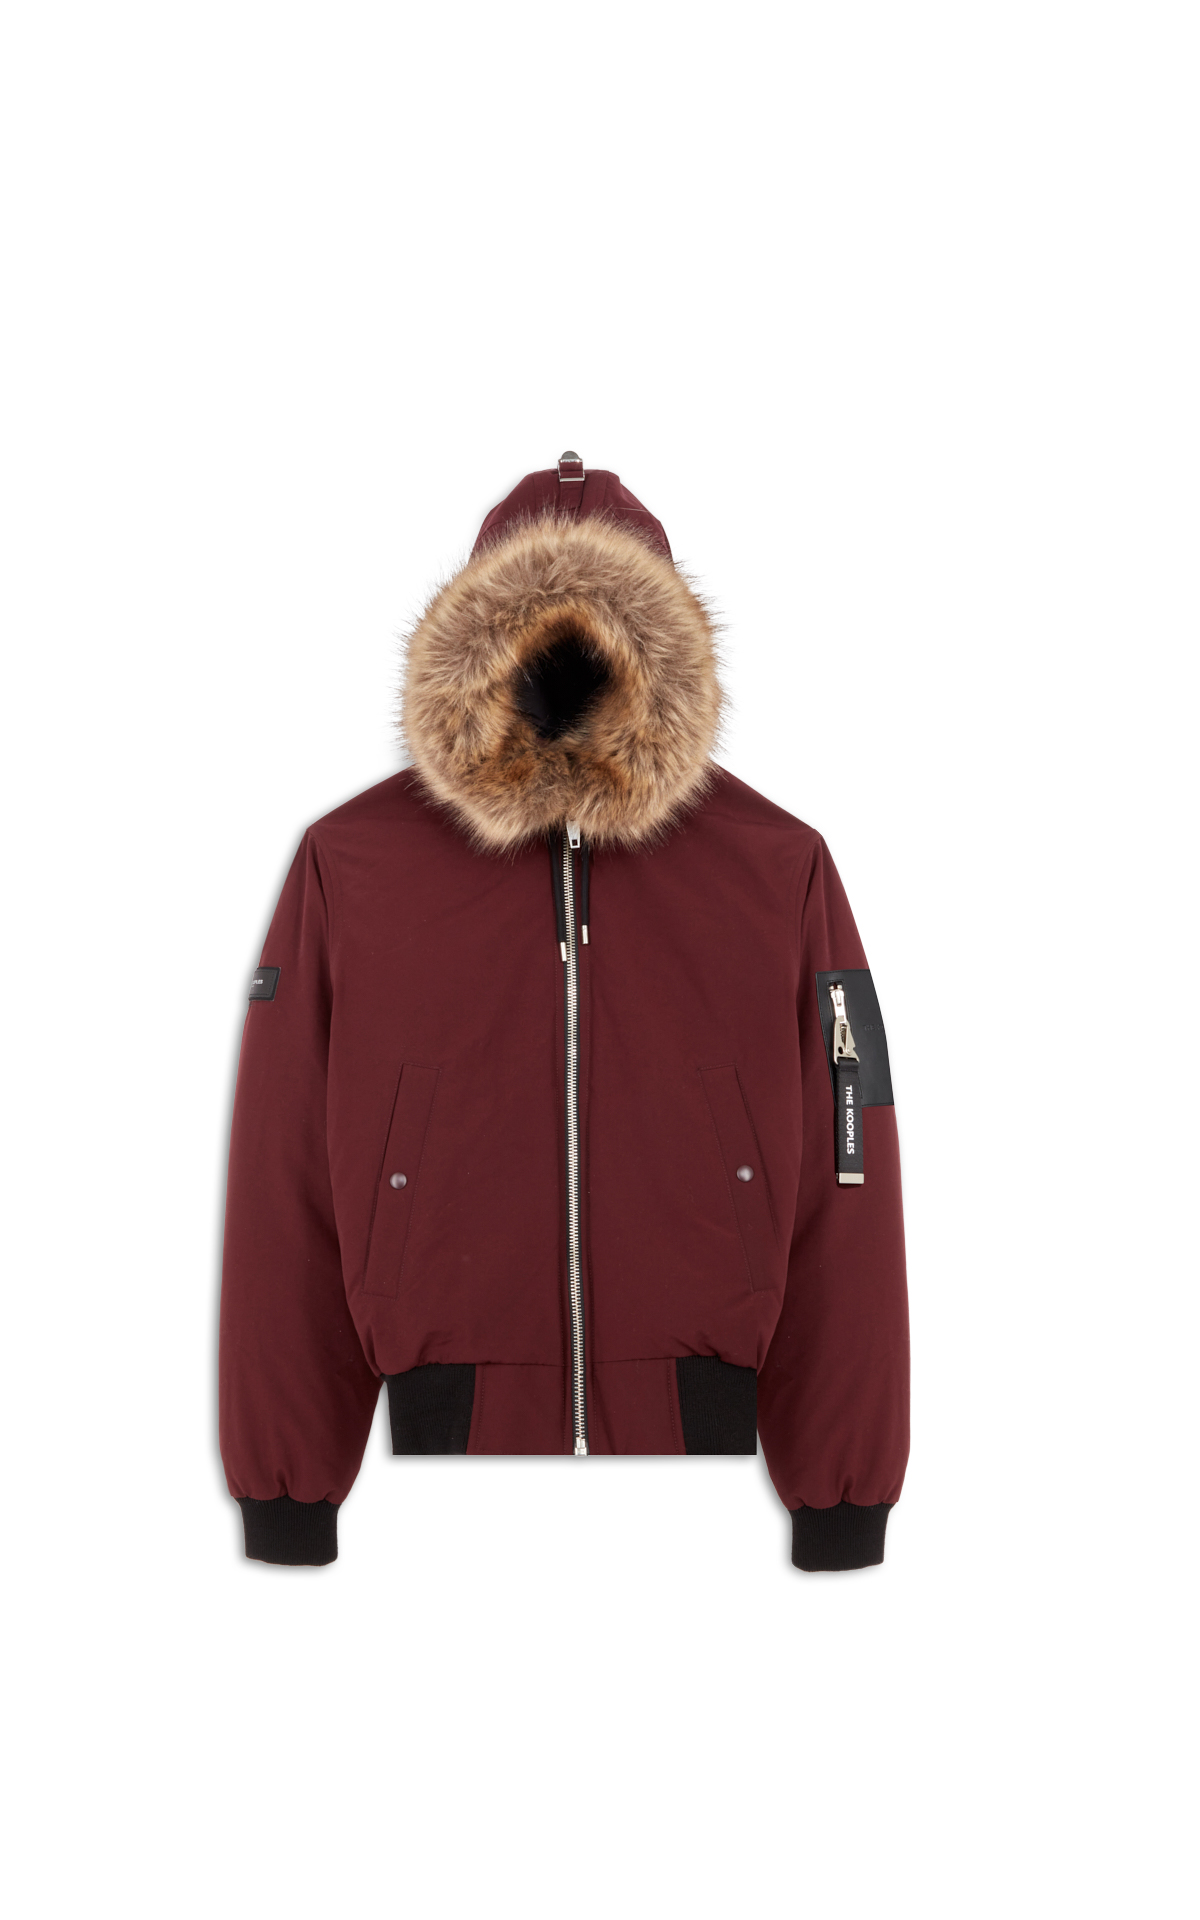 The Kooples Burgundy jacket with faux fur hoodie la vallée village